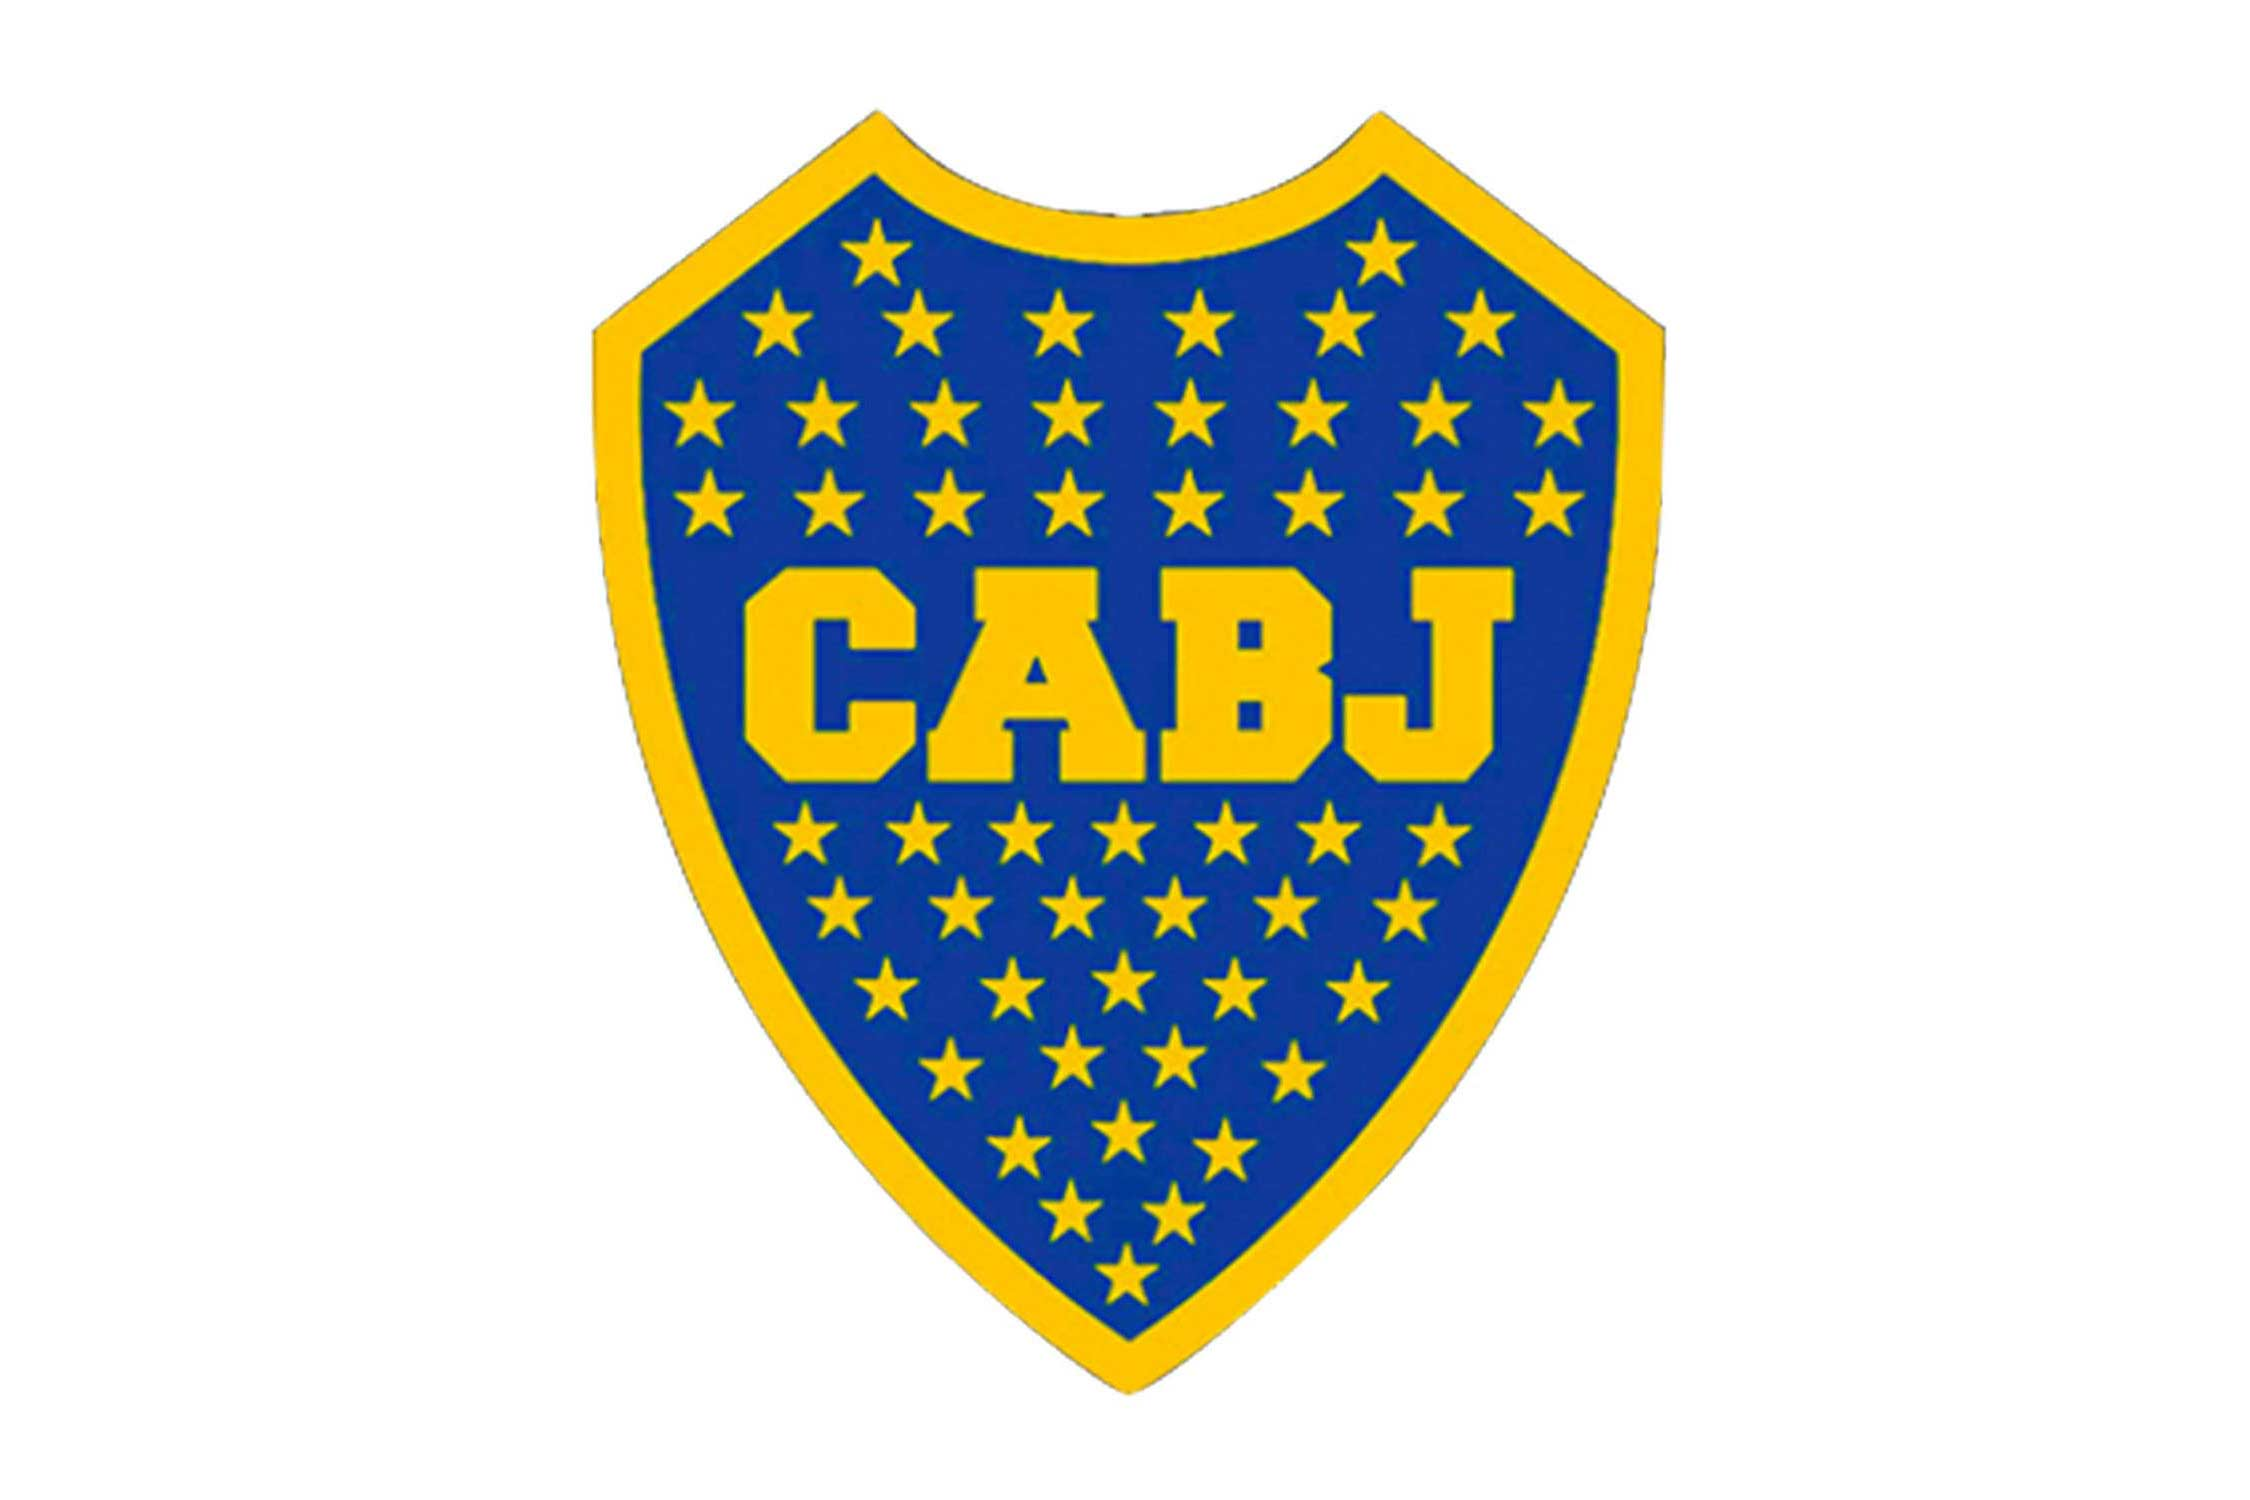 Why are there so many stars? Because Boca Juniors adds one every time they win something, and they win a lot of things.